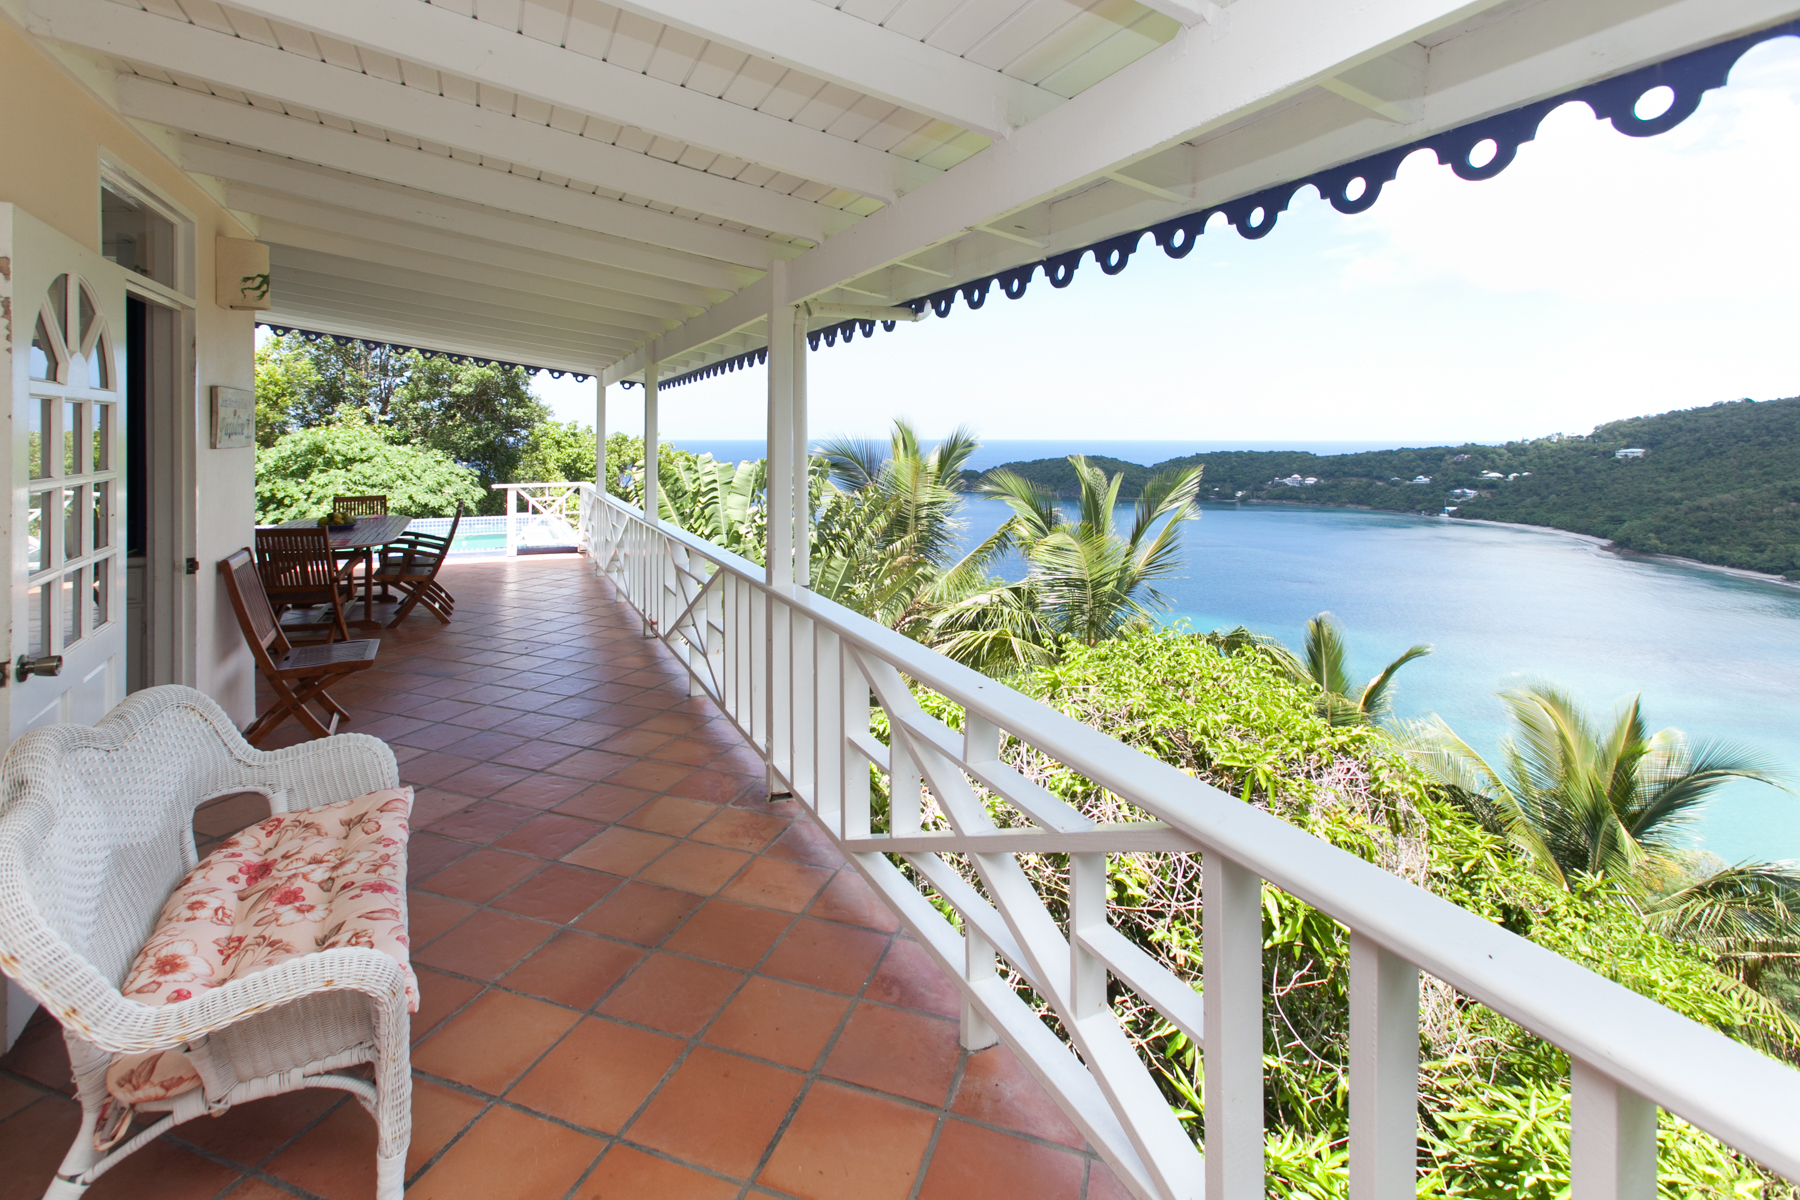 Additional photo for property listing at Paradise Found Other British Virgin Islands, 영국령 버진 아일랜드의 기타 지역 영국령 버진 아일랜드